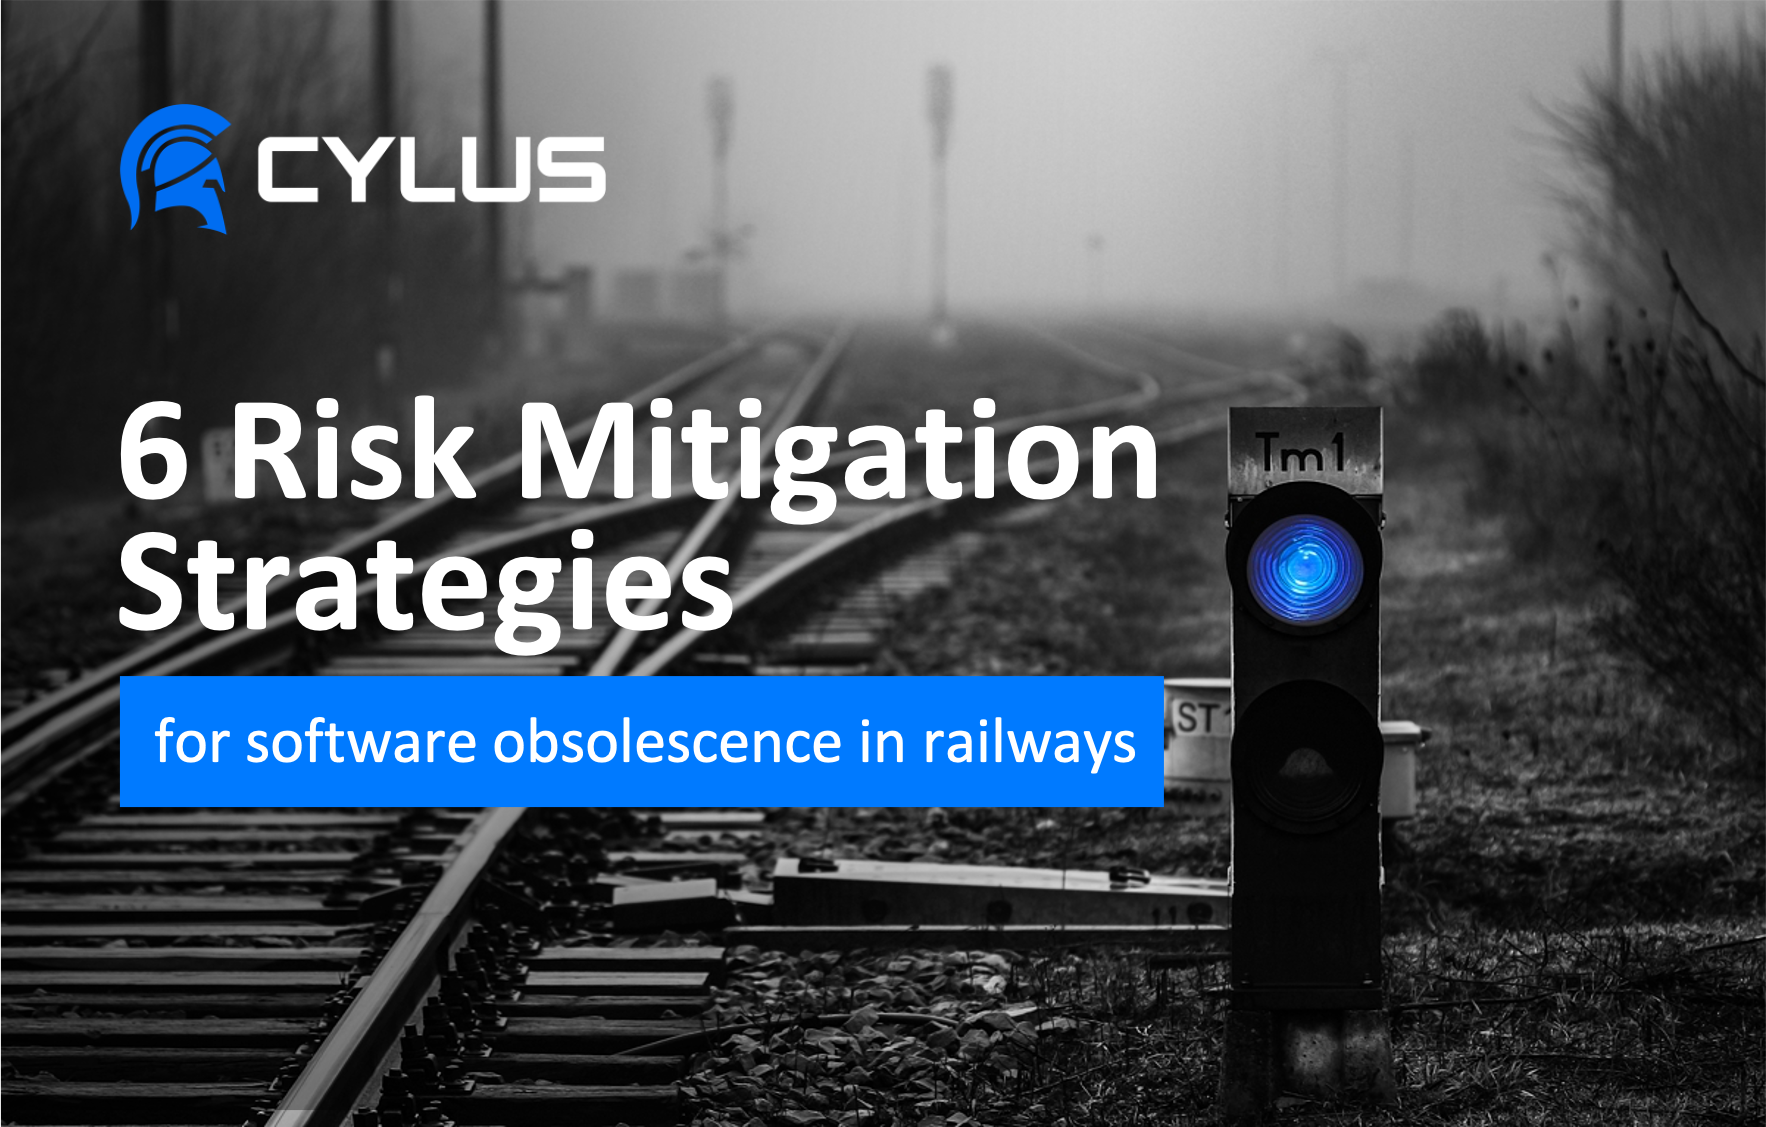 6 cyber risk mitigation strategies for software obsolescence in railways